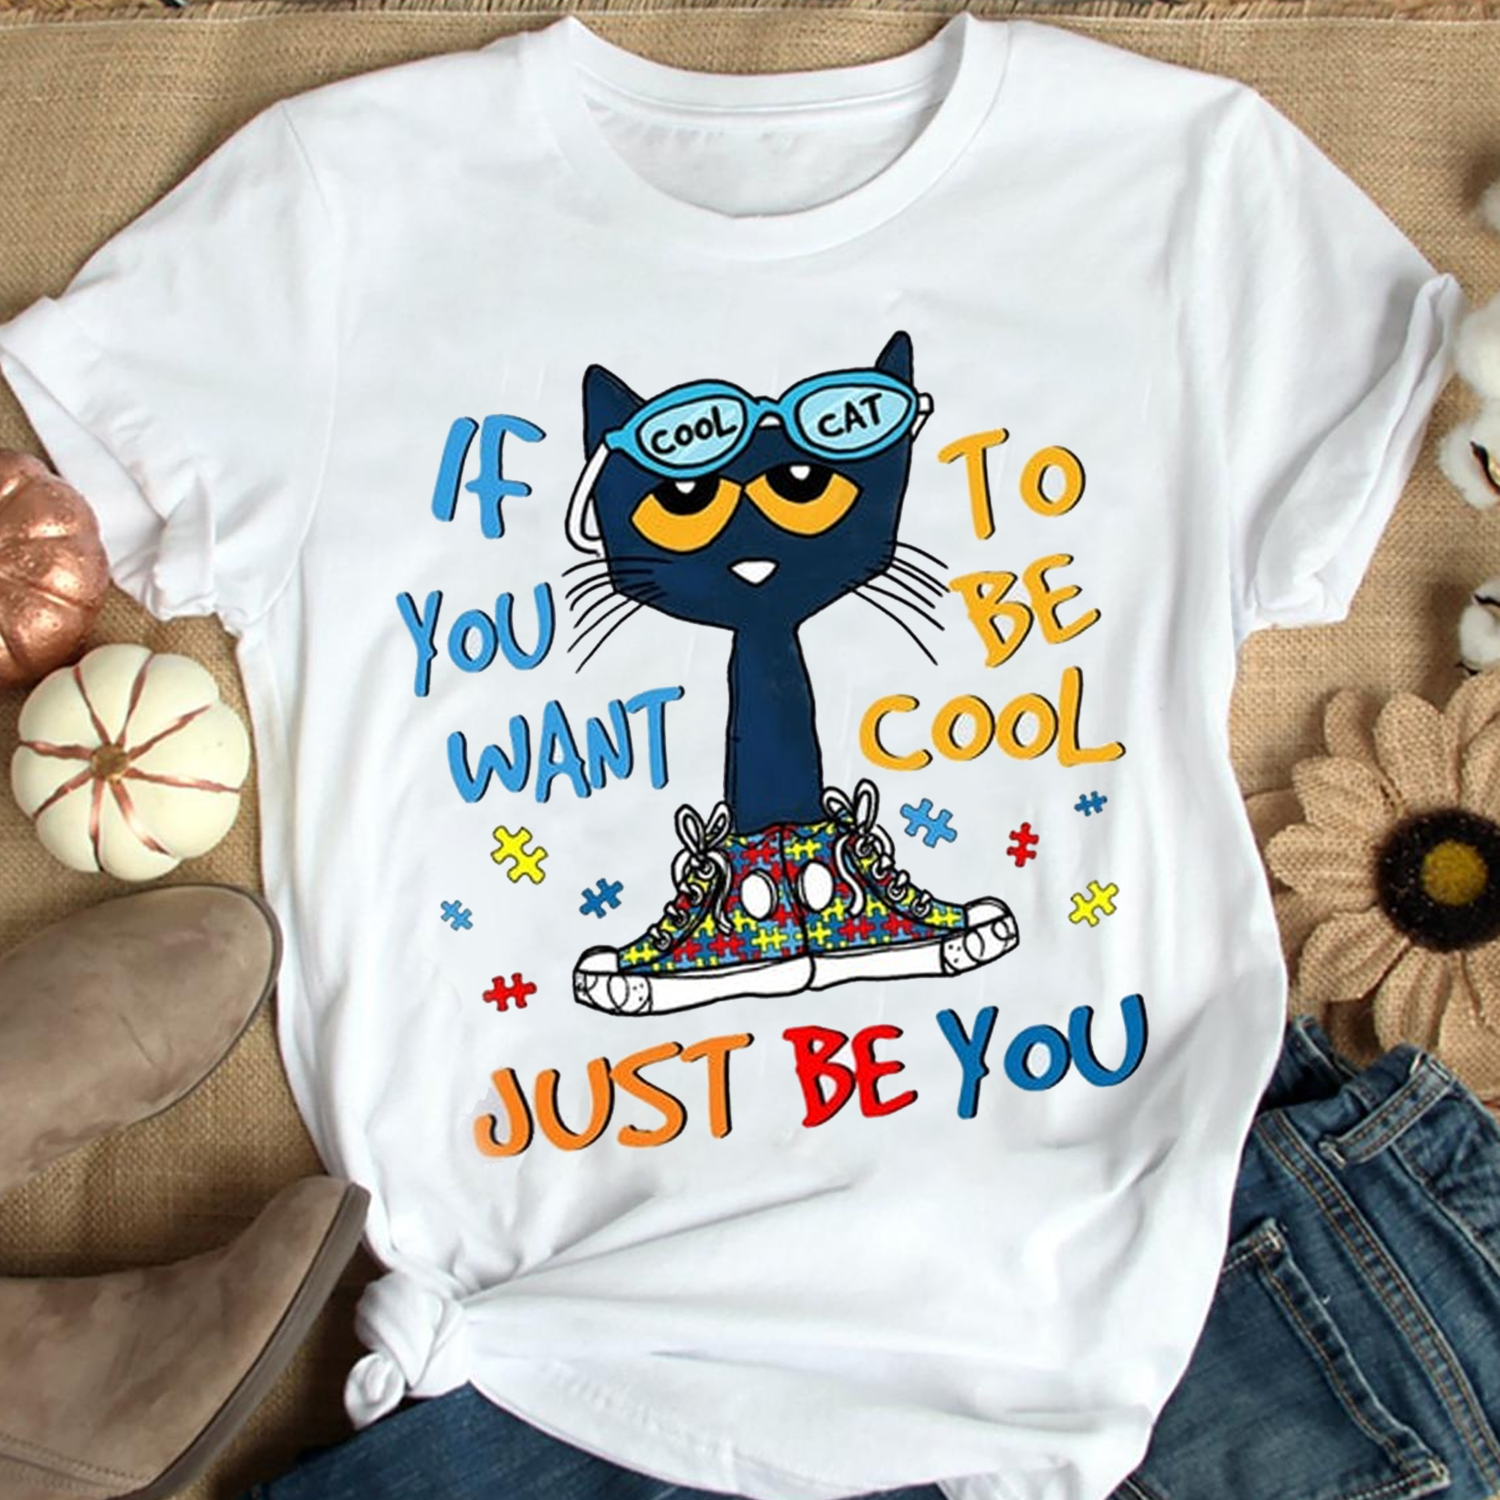 If you want to be cool just be you Cat Autism Awareness Shirt,Autism Mom Shirt,Unbreakable TShirt,Puzzle Piece Tee Trending Unisex Hoodies Sweatshirt Long Sleeve V Neck Kid T Shirt